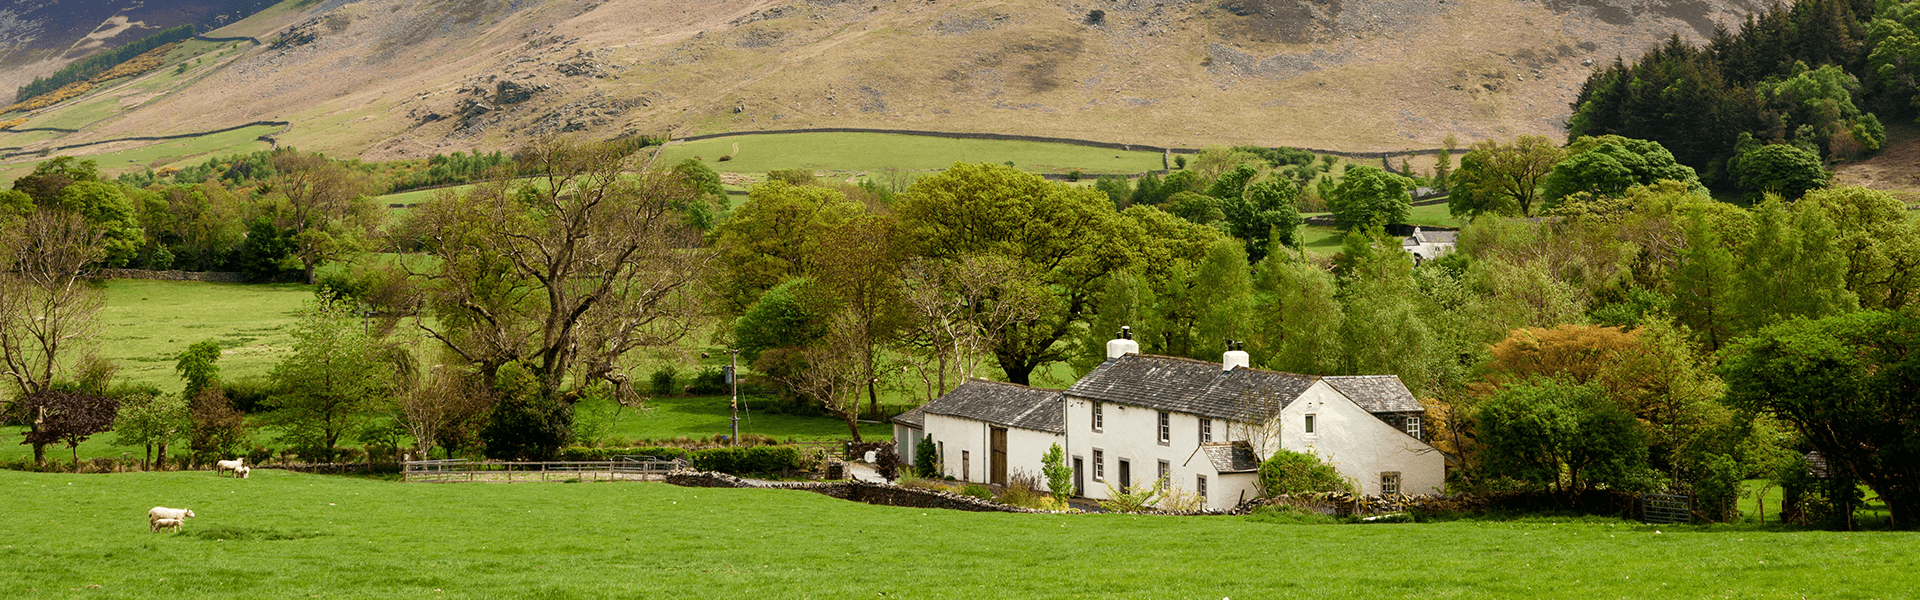 Farmhouse Lake District